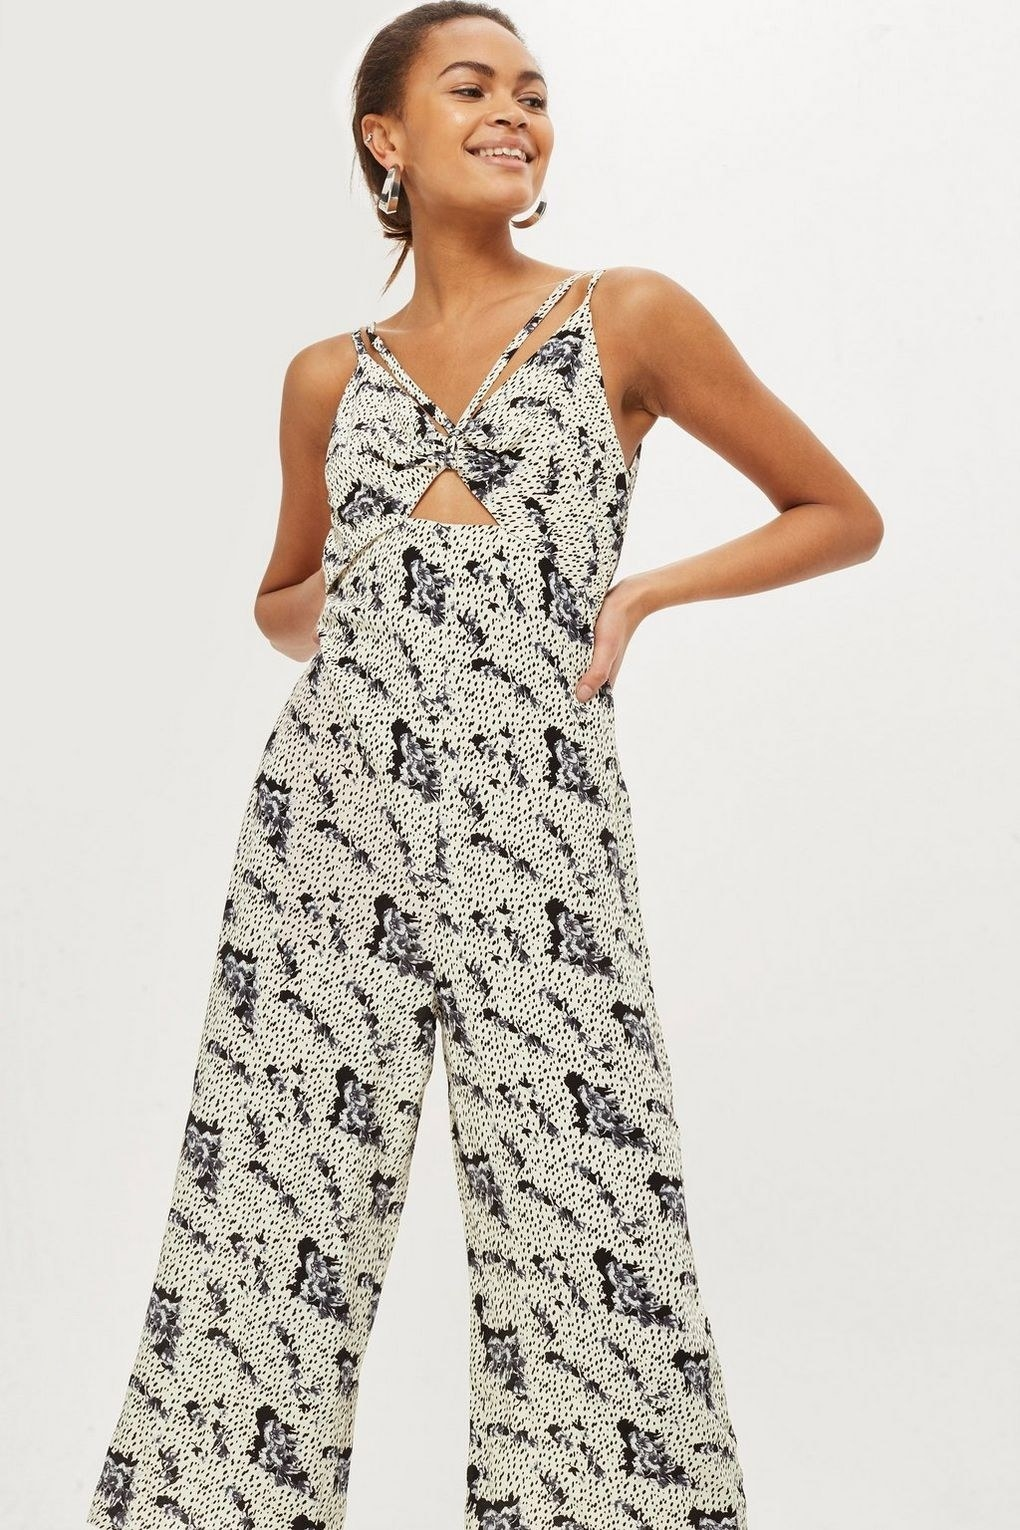 c93c56a30aa 17. Topshop rocks the style world with its selection of tall dresses